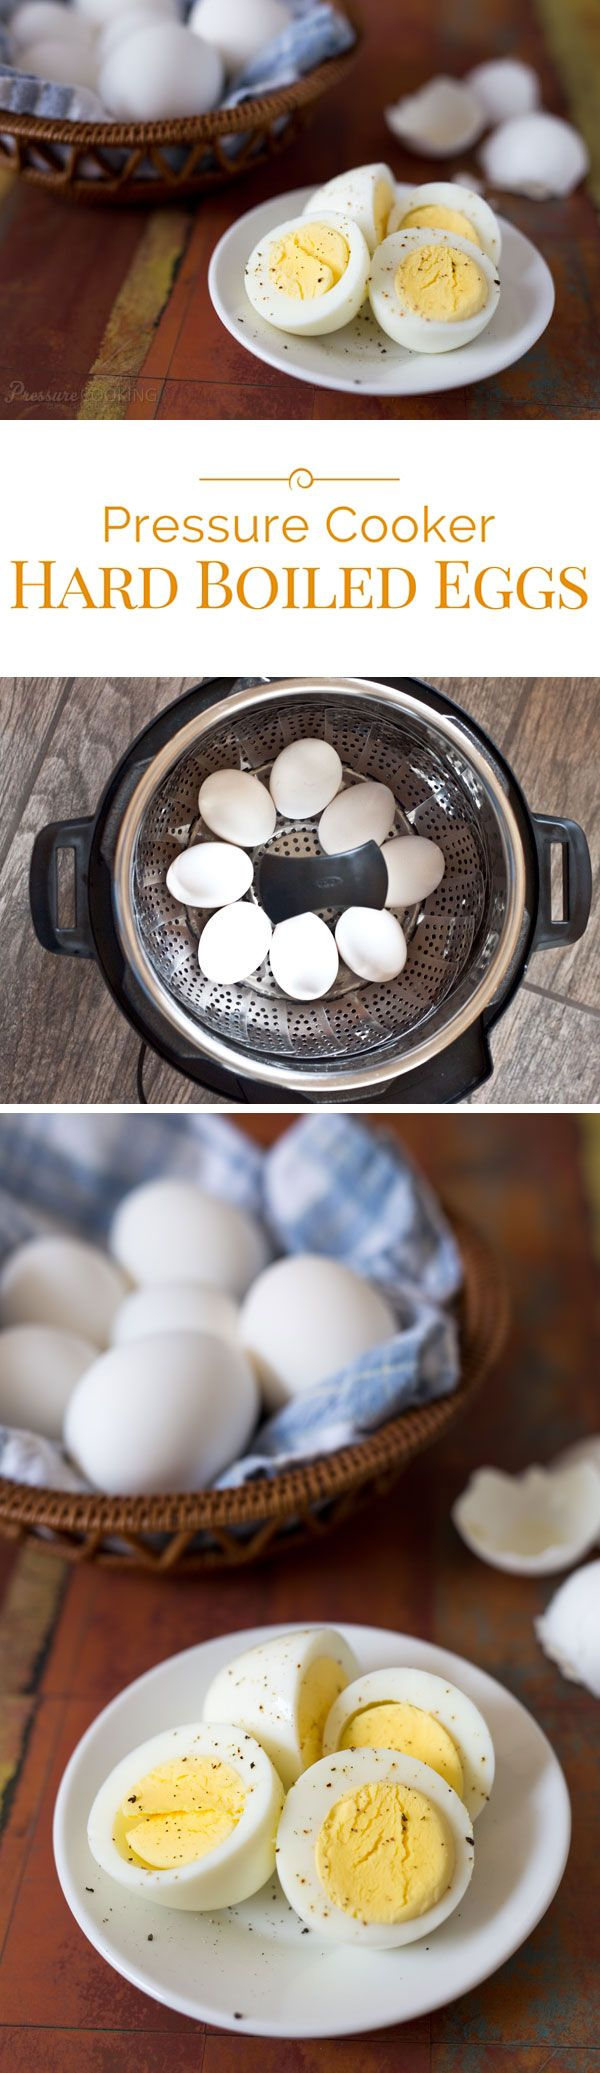 Best 25+ Hard Boil Eggs Ideas Only On Pinterest  How To Boil Eggs, Perfect  Hard Boiled Eggs And Cooking Hard Boiled Eggs